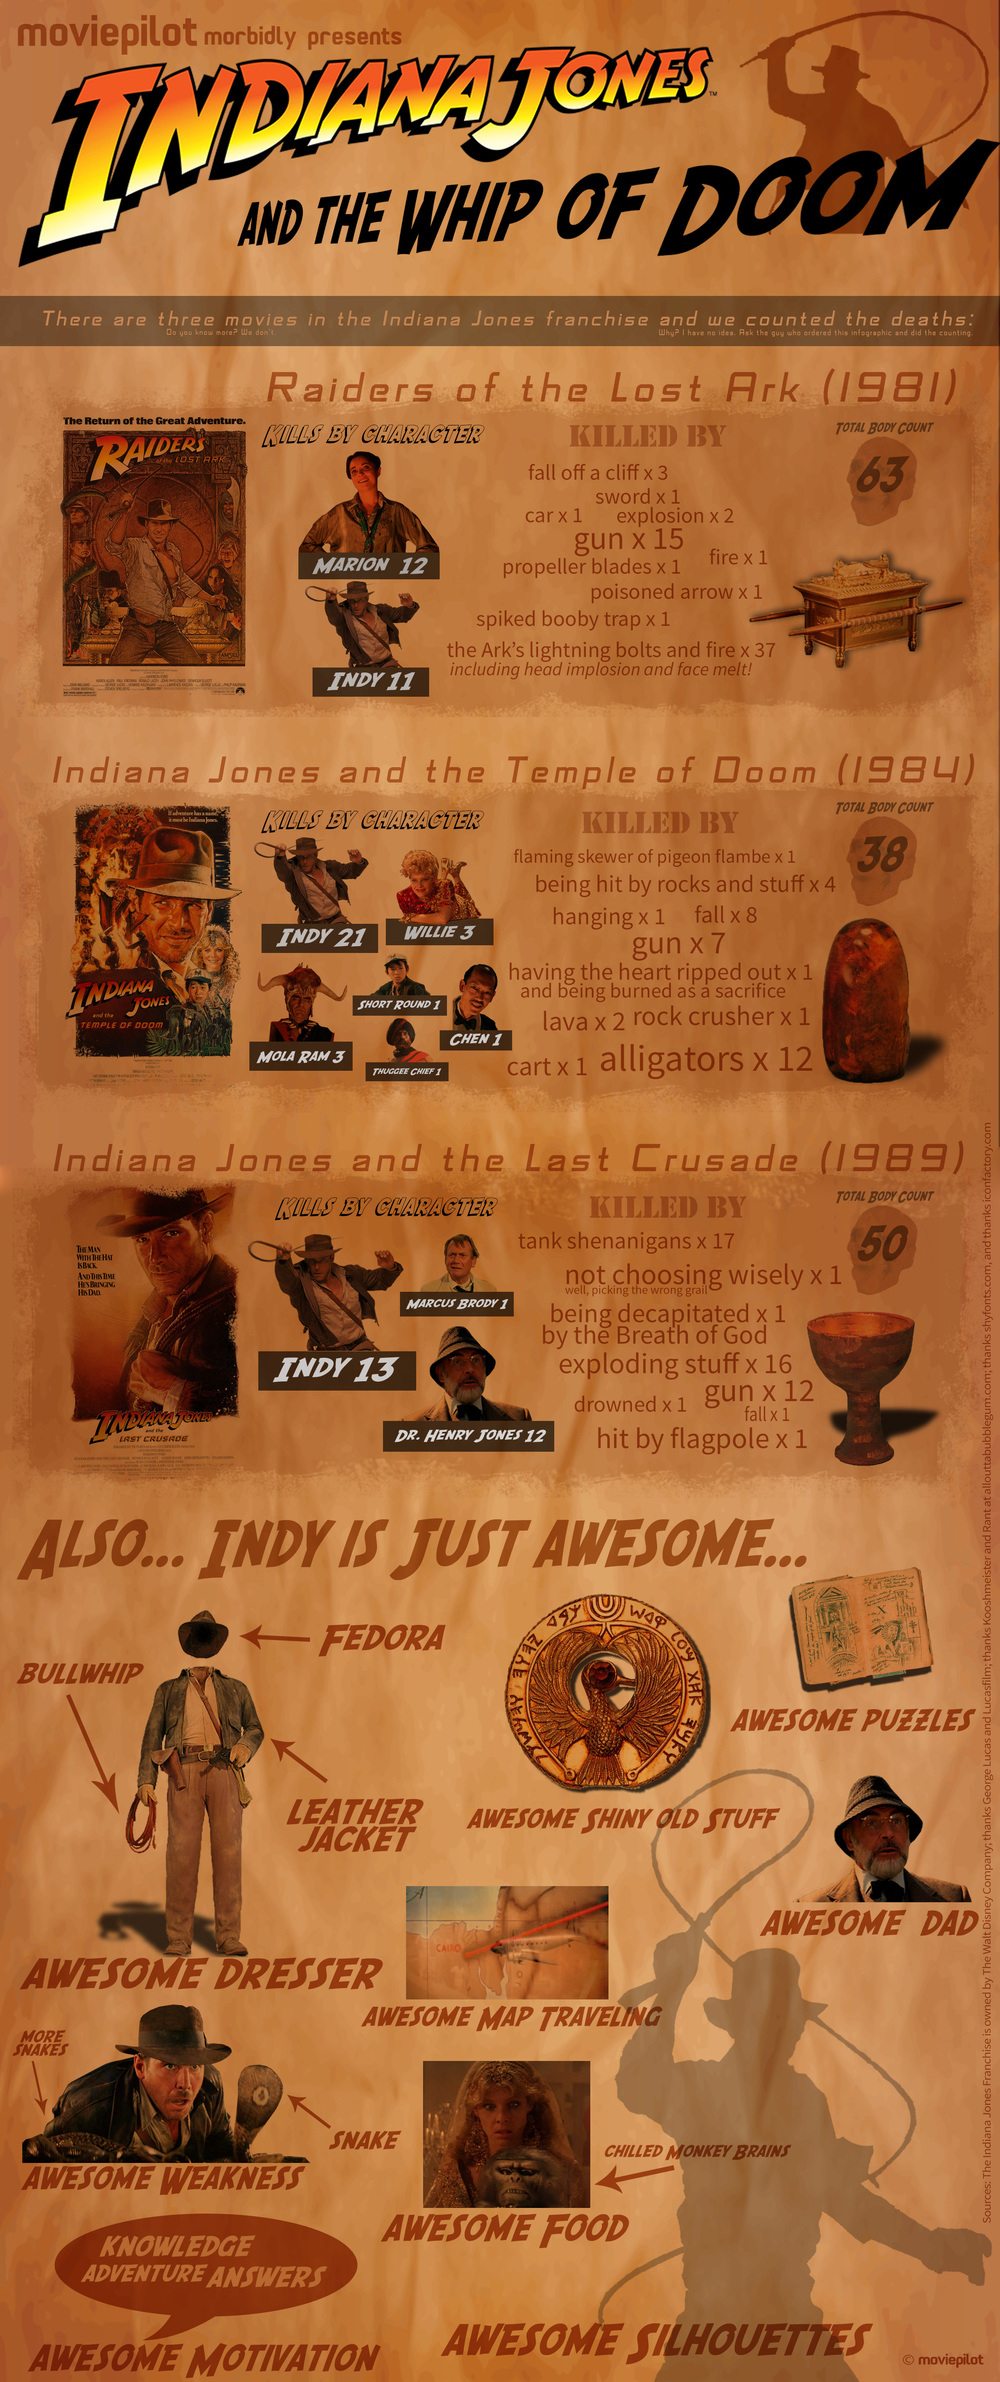 indianajones-infographic-deaths-xlarge.jpg